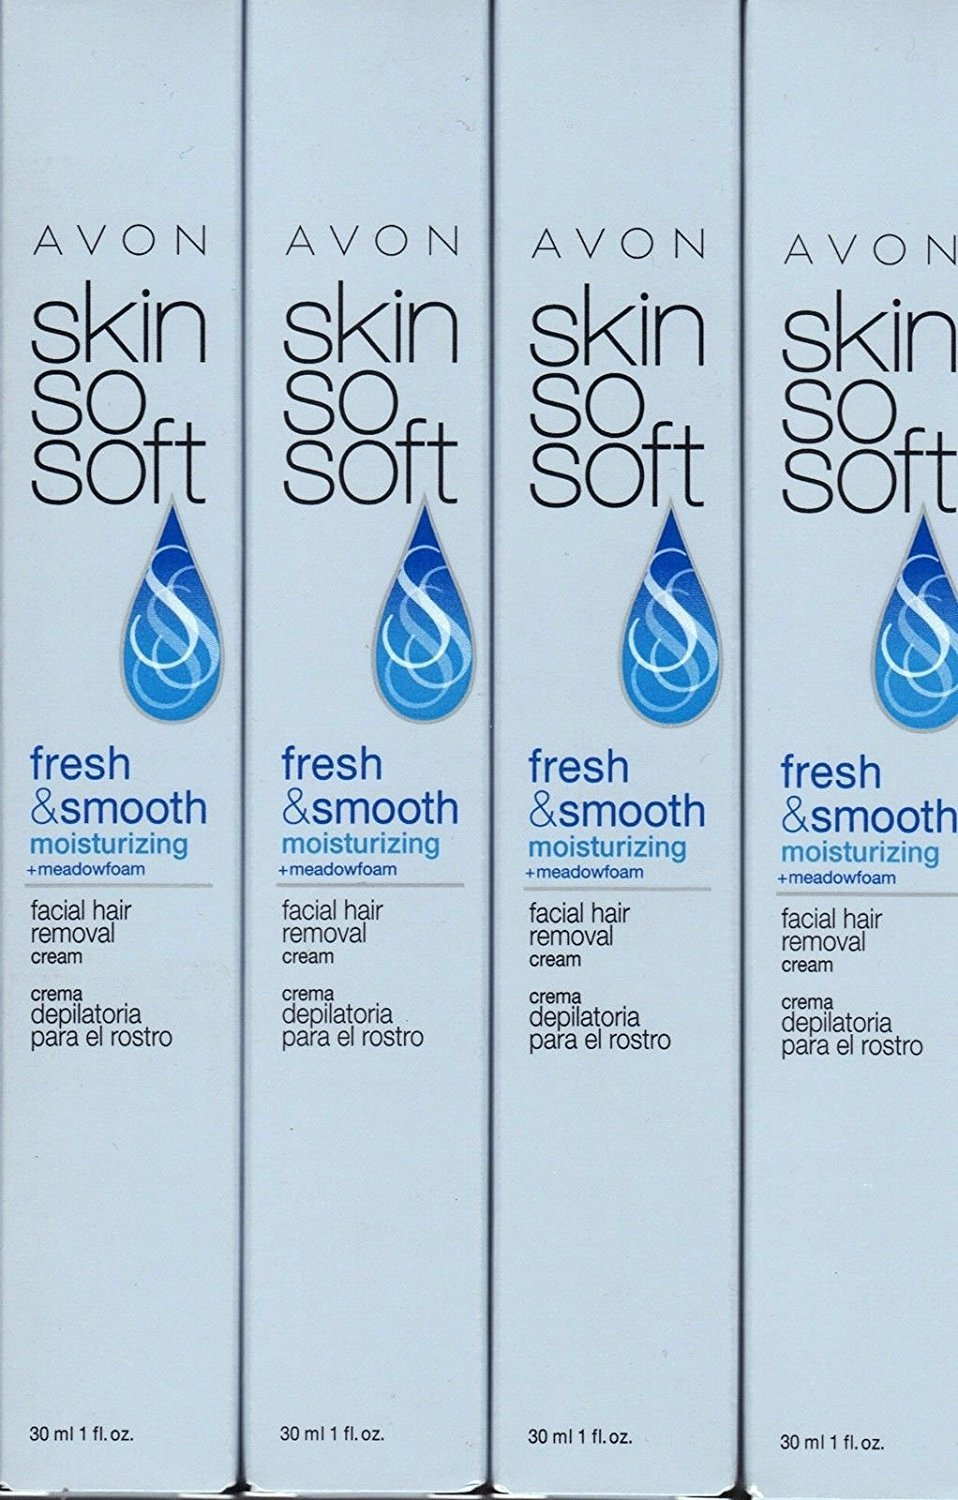 Avon Skin So Soft Facial Hair Removal Cream Lot of 4 product image